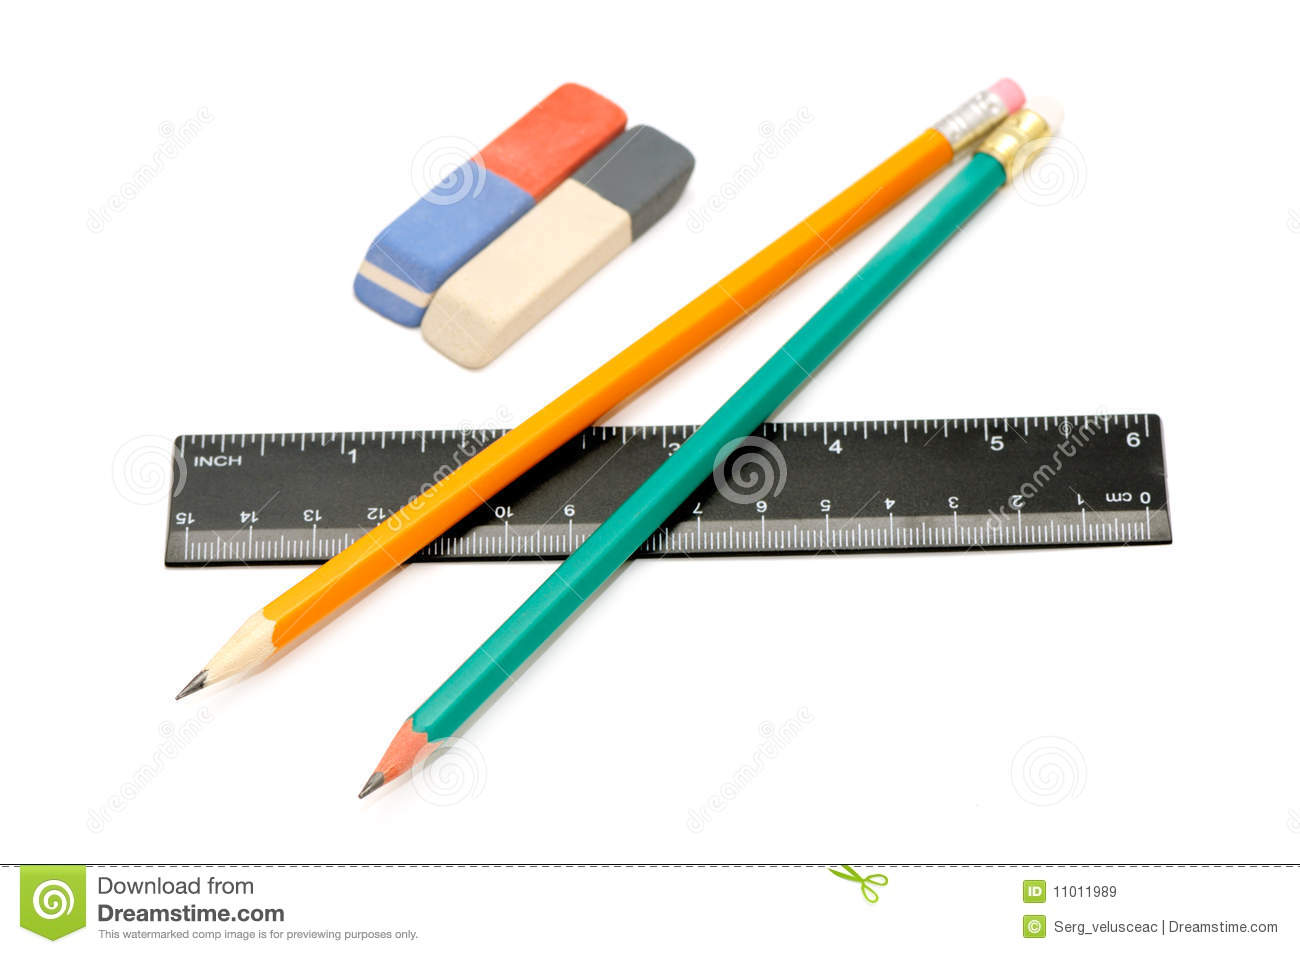 Radergummit pencils linjalen